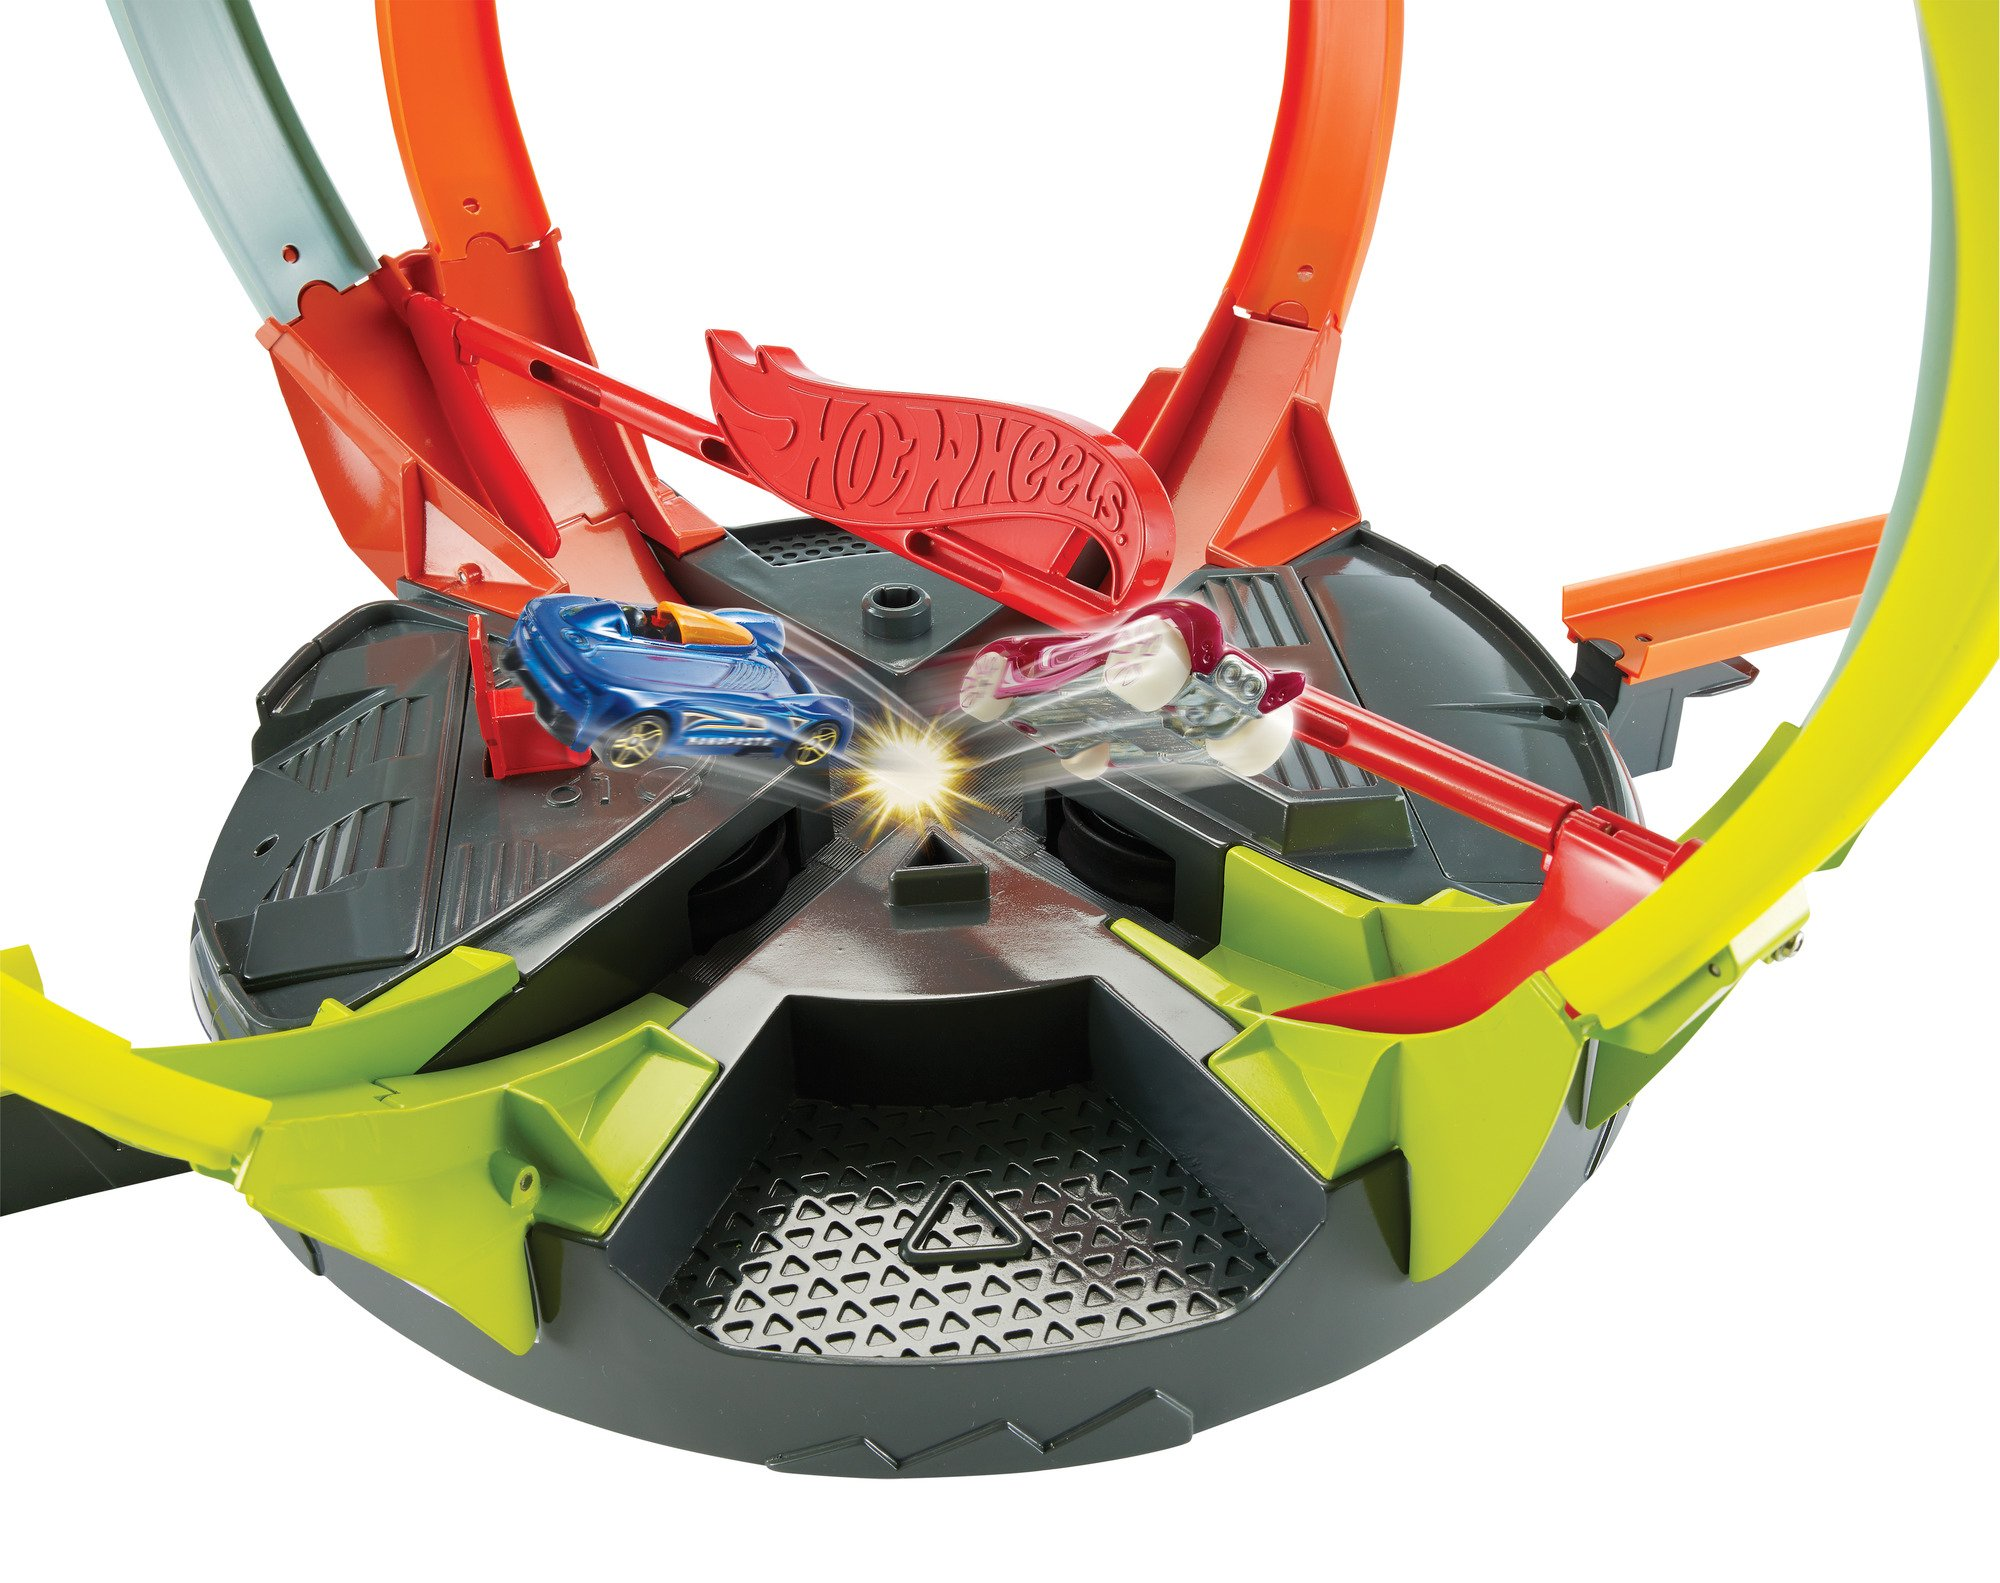 Hot Wheels Roto Revolution Track Playset by Hot Wheels (Image #5)